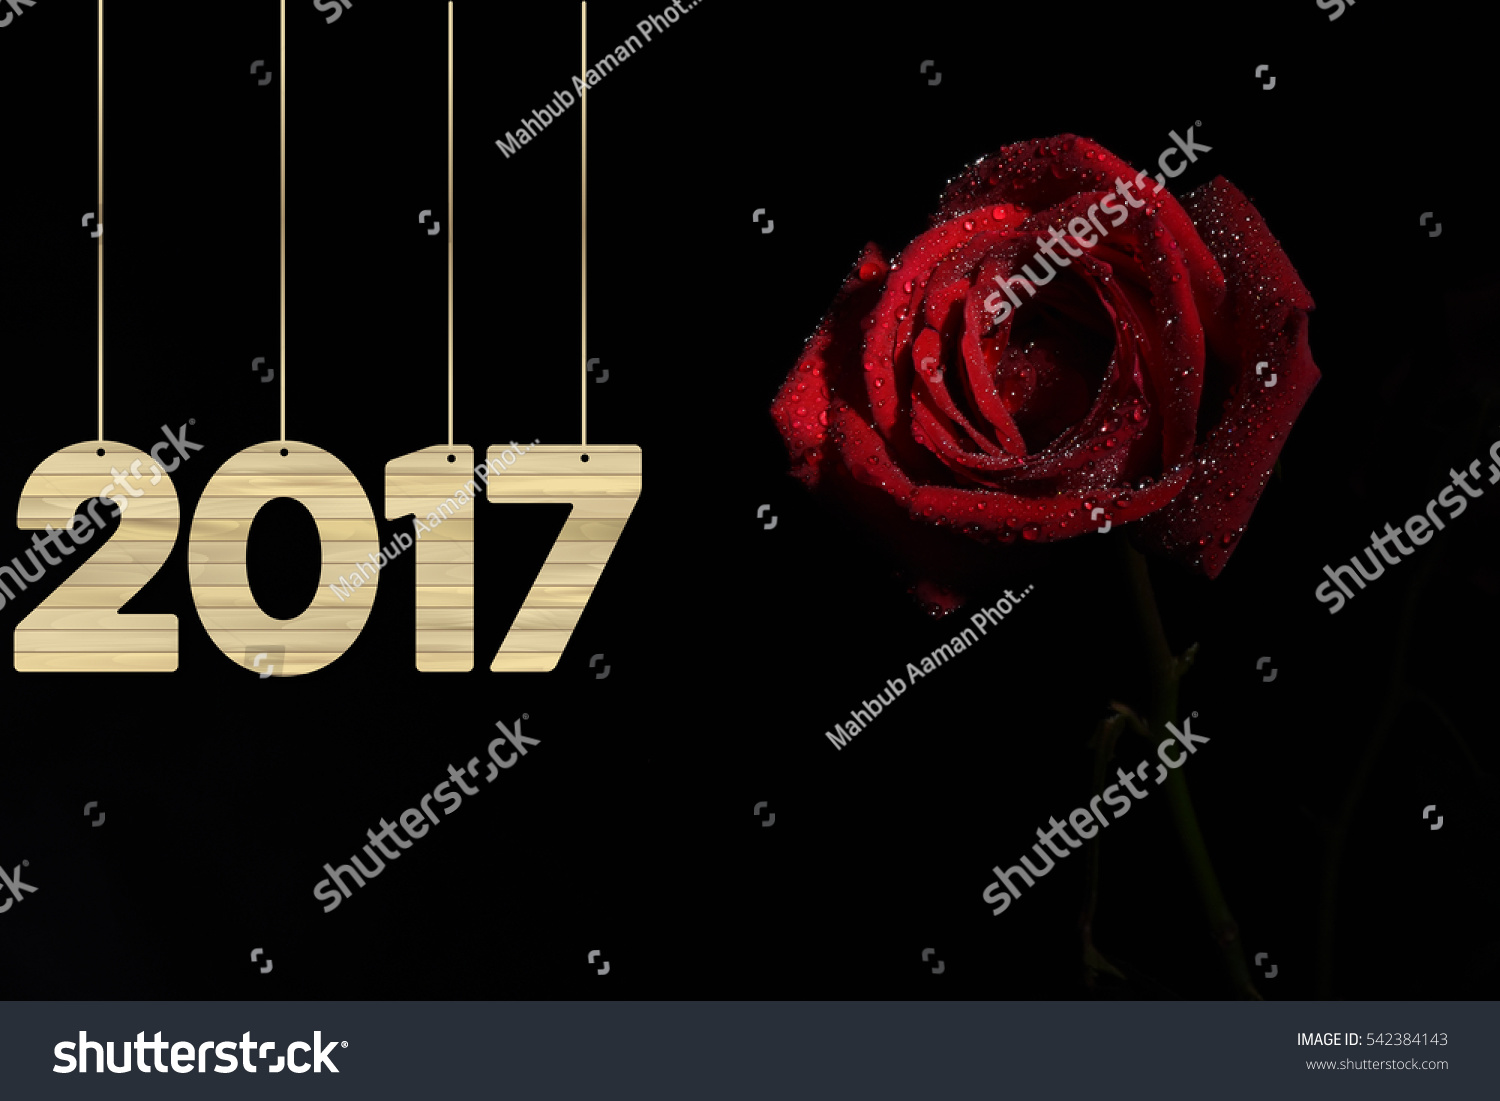 red rose with happy new year 2017 542384143